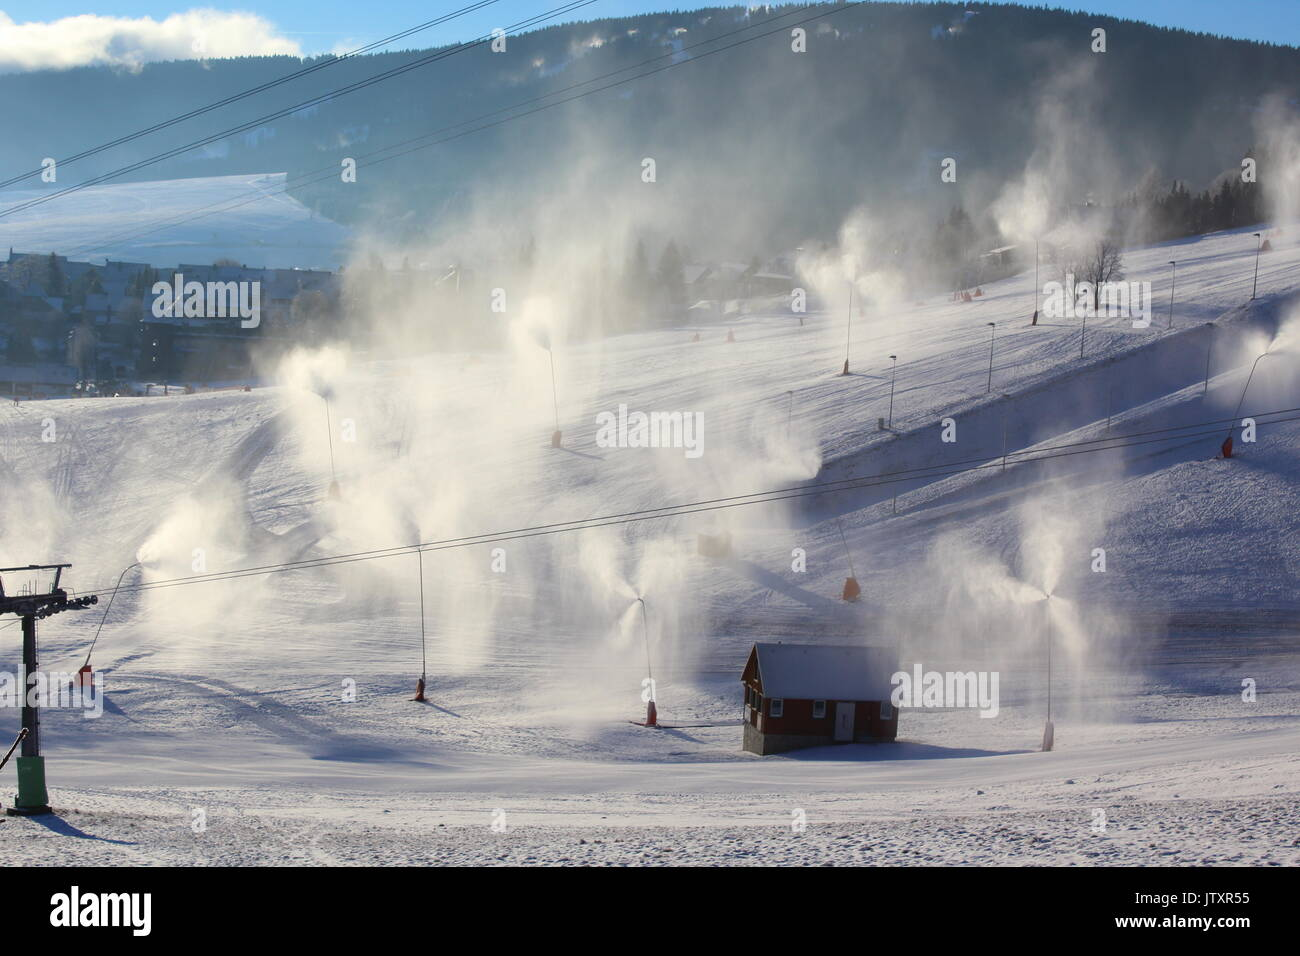 snowmaking with snow cannons and snow lances at ski resort in Oberwiesenthal, Germany - Stock Image